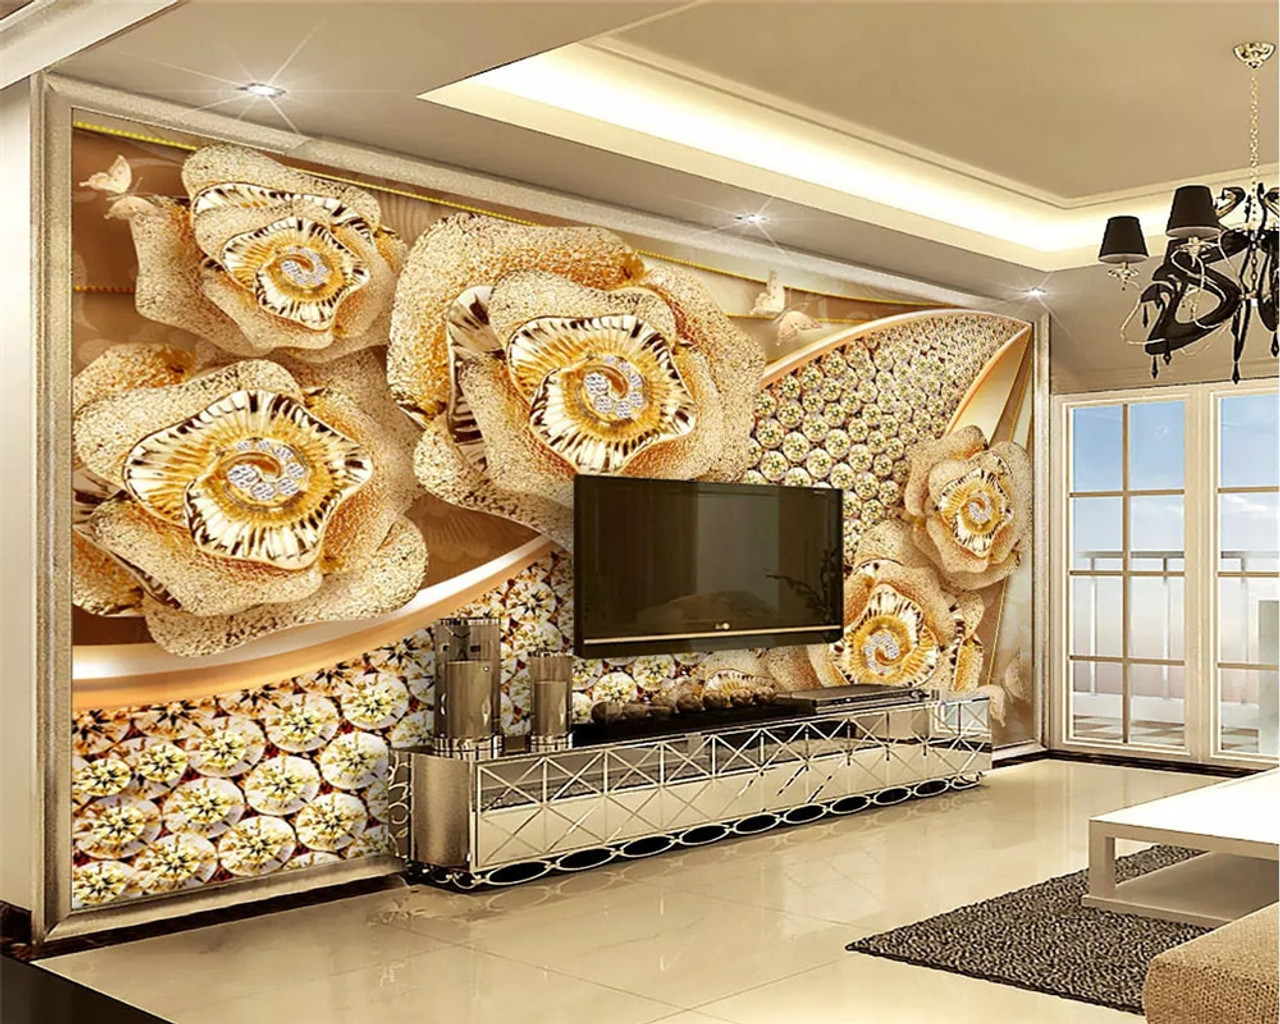 Beibehang Custom Mural 3d Wallpaper For Bedroom Walls 3D Luxury Floral jewelry Background Wall Paper Home  91844.1567750259